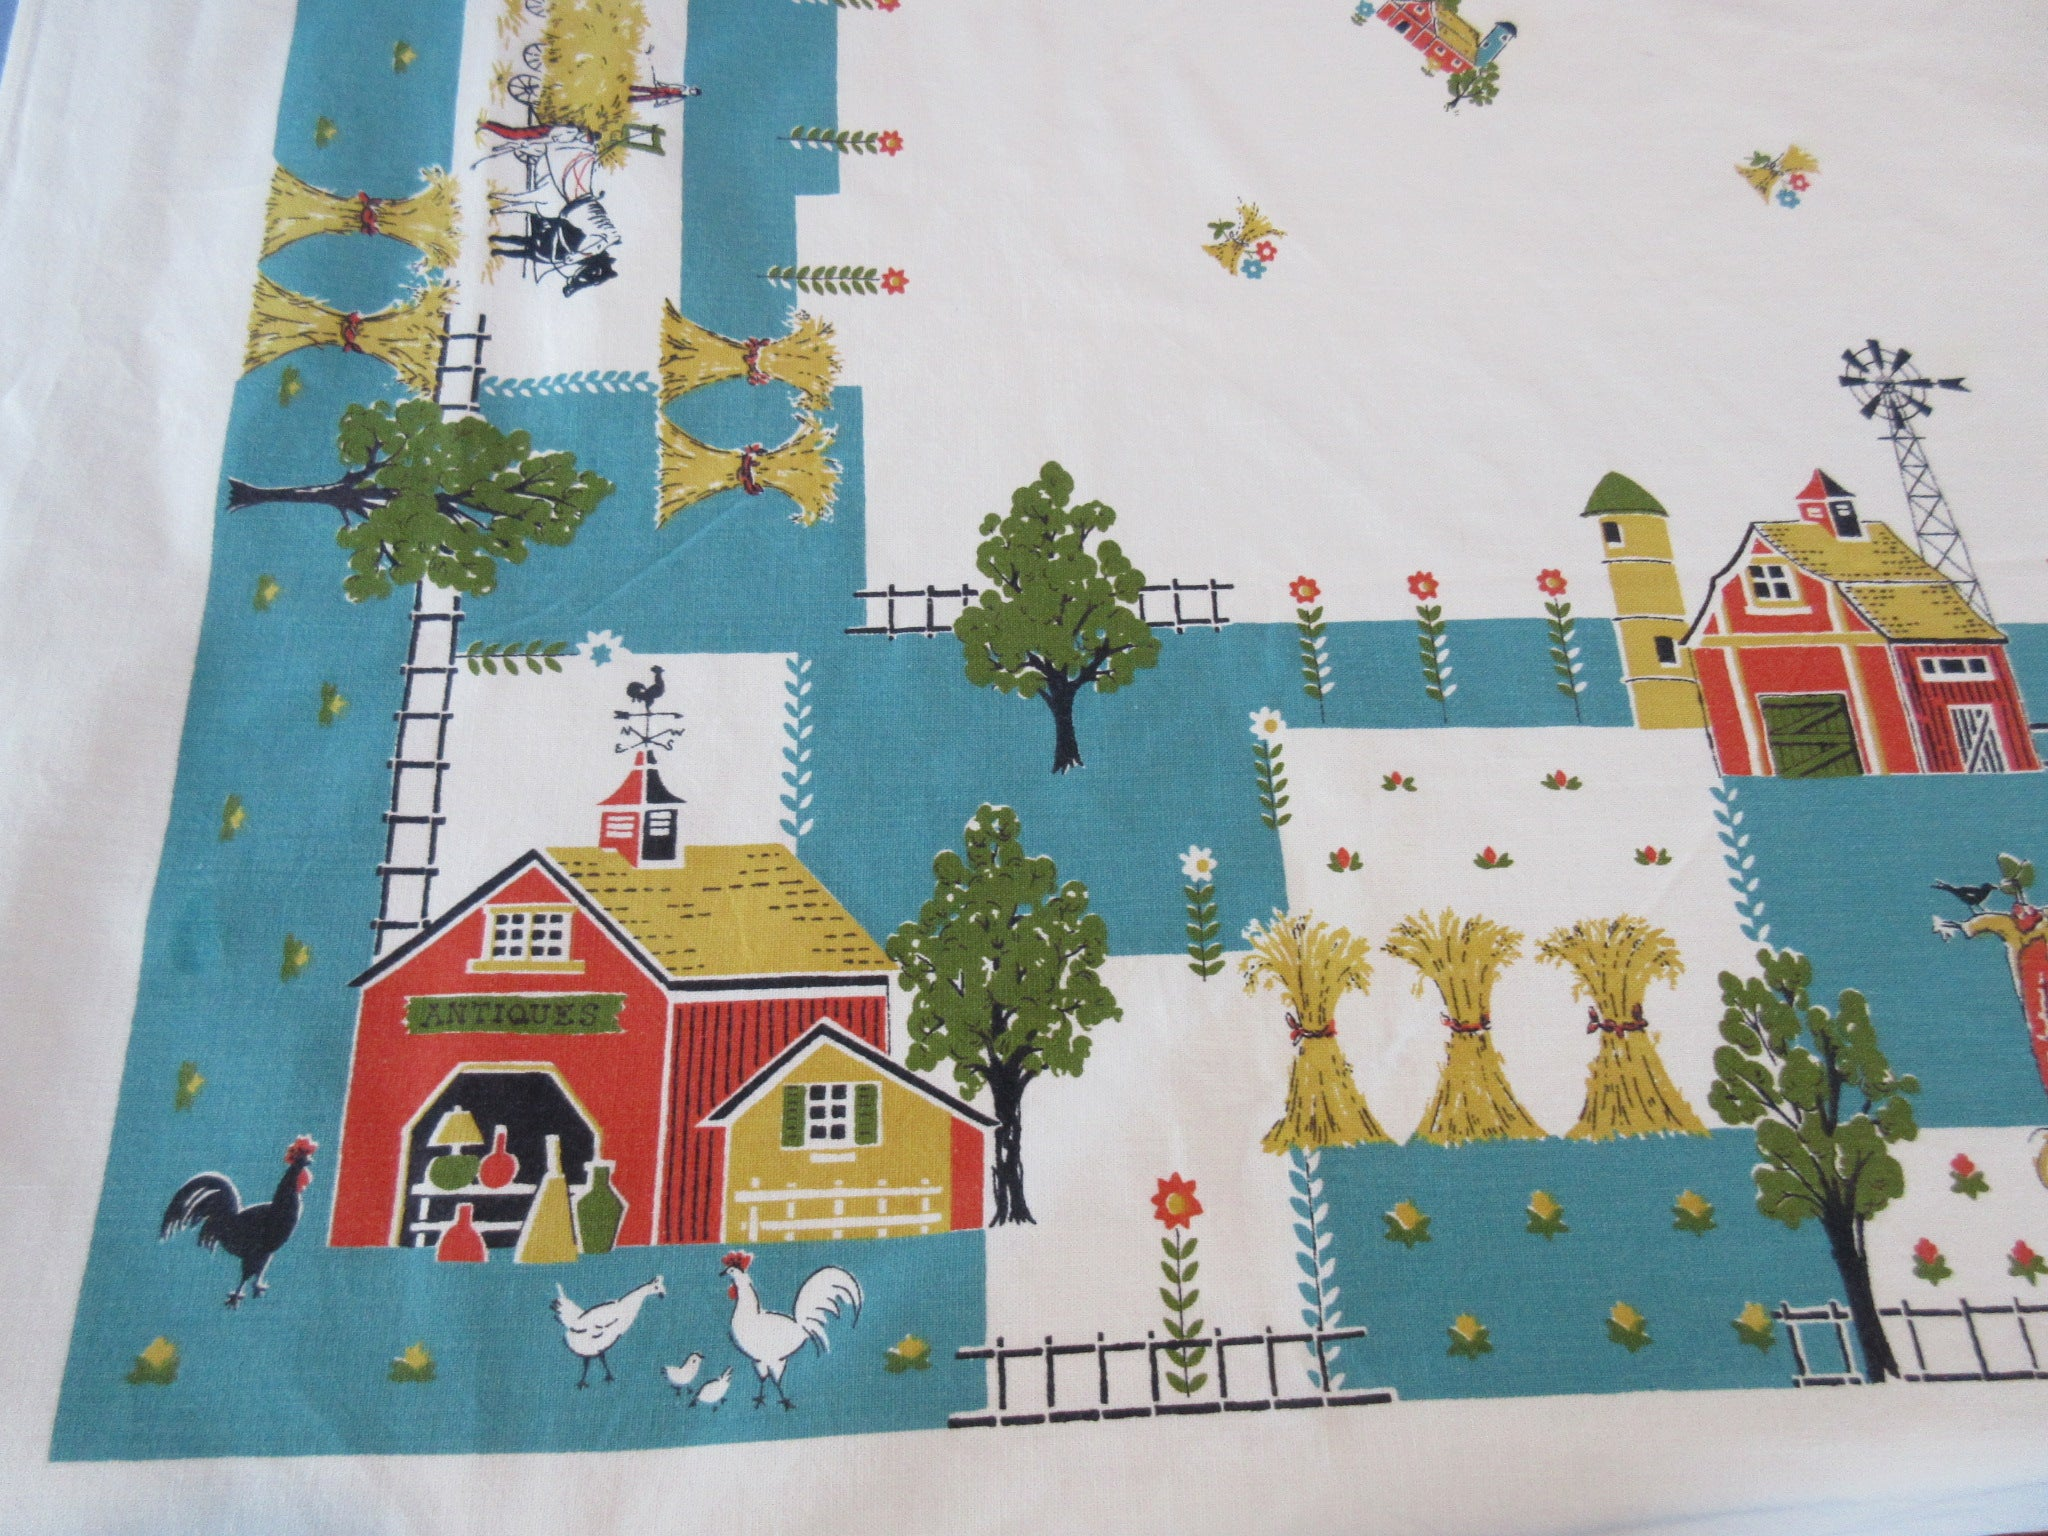 Fun Farm on Teal Novelty Vintage Printed Tablecloth (64 X 53)